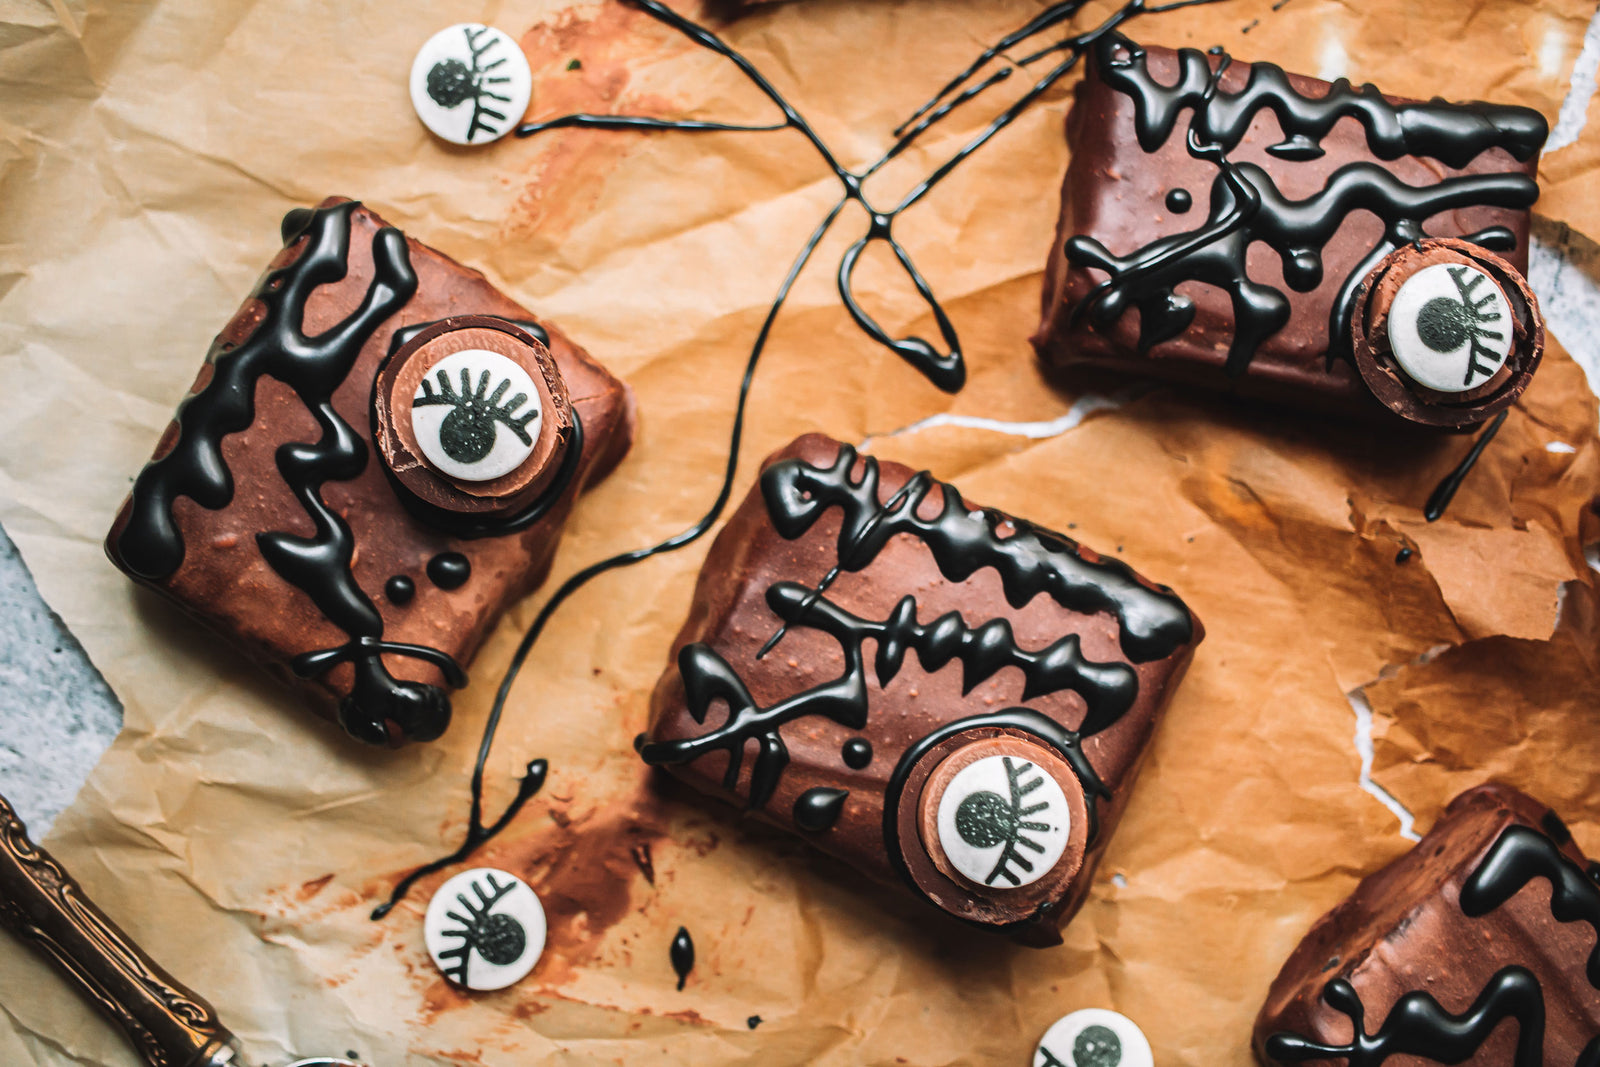 No Bake Hocus Pocus Spellbook Brownies Article